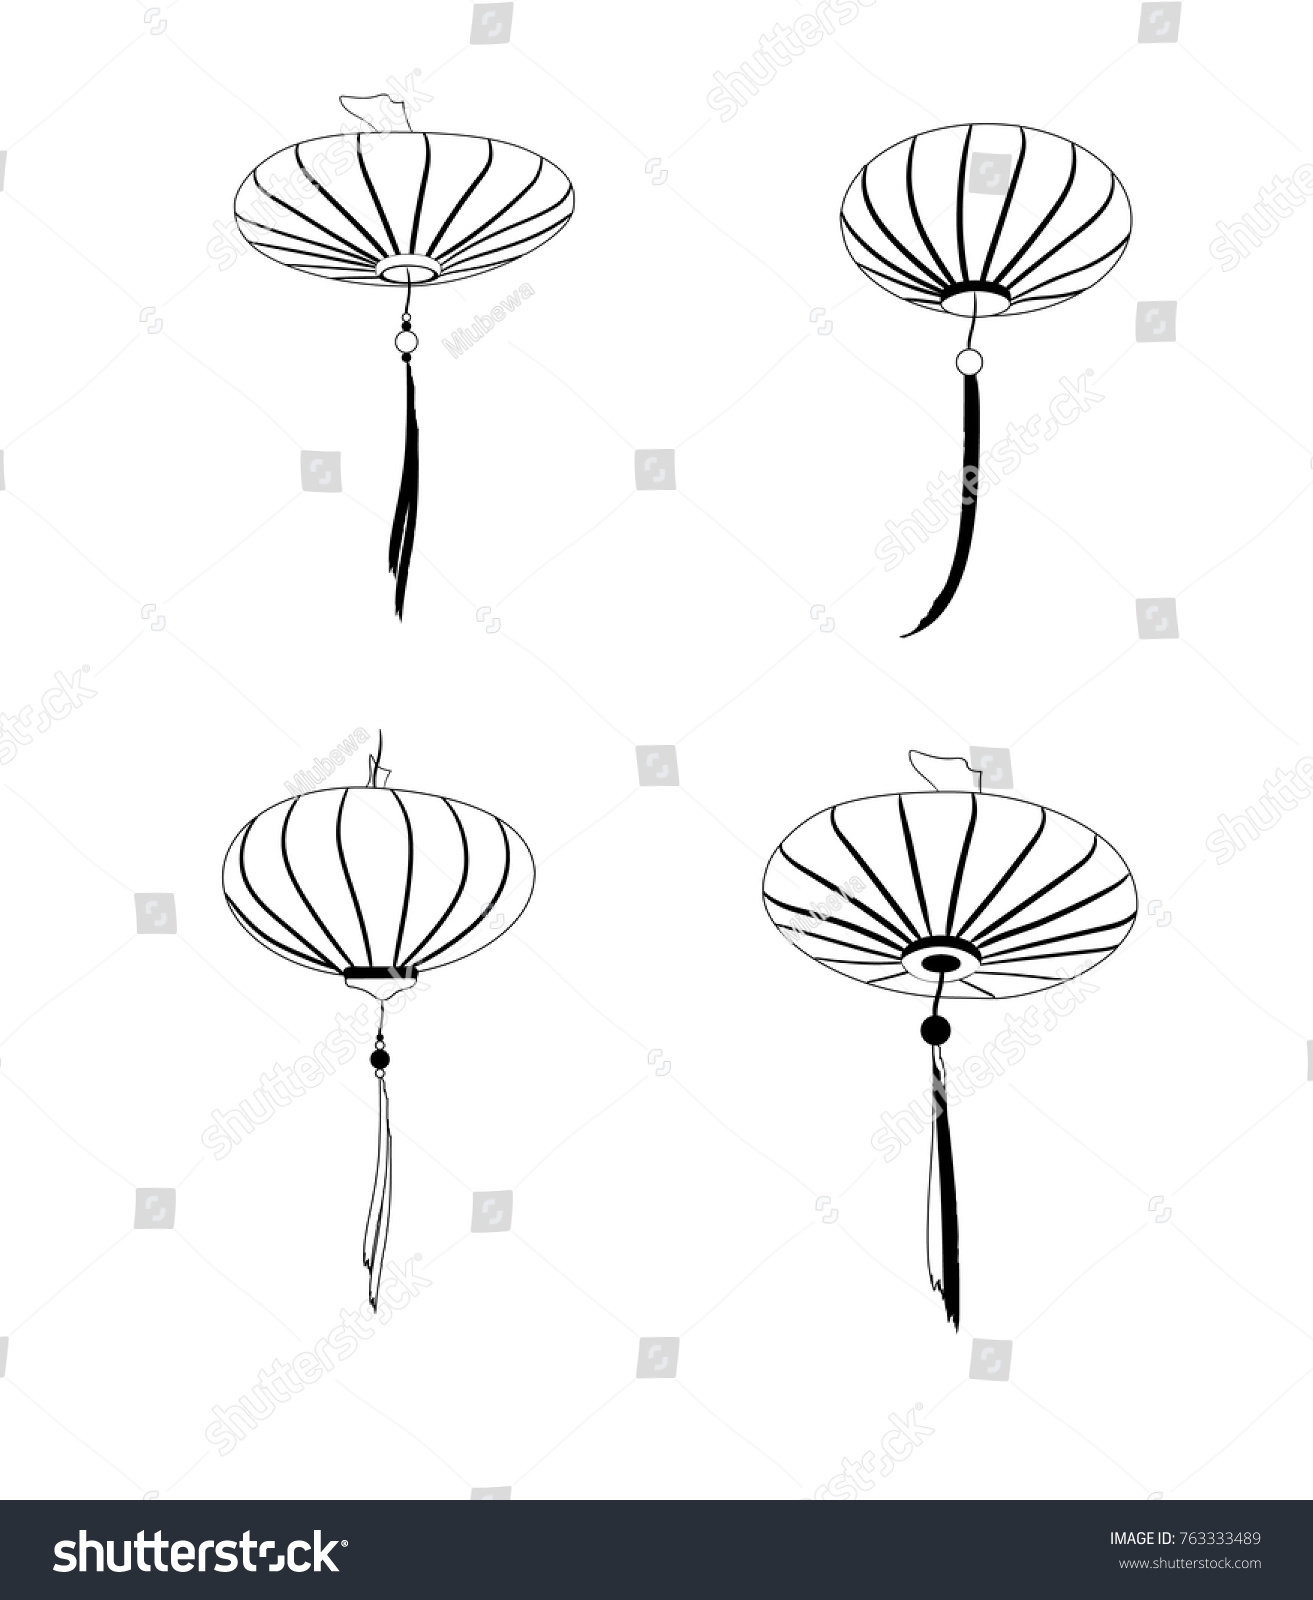 Set Of Four Chinese Lanterns Isolated On White BackgroundBlack And Colors Template